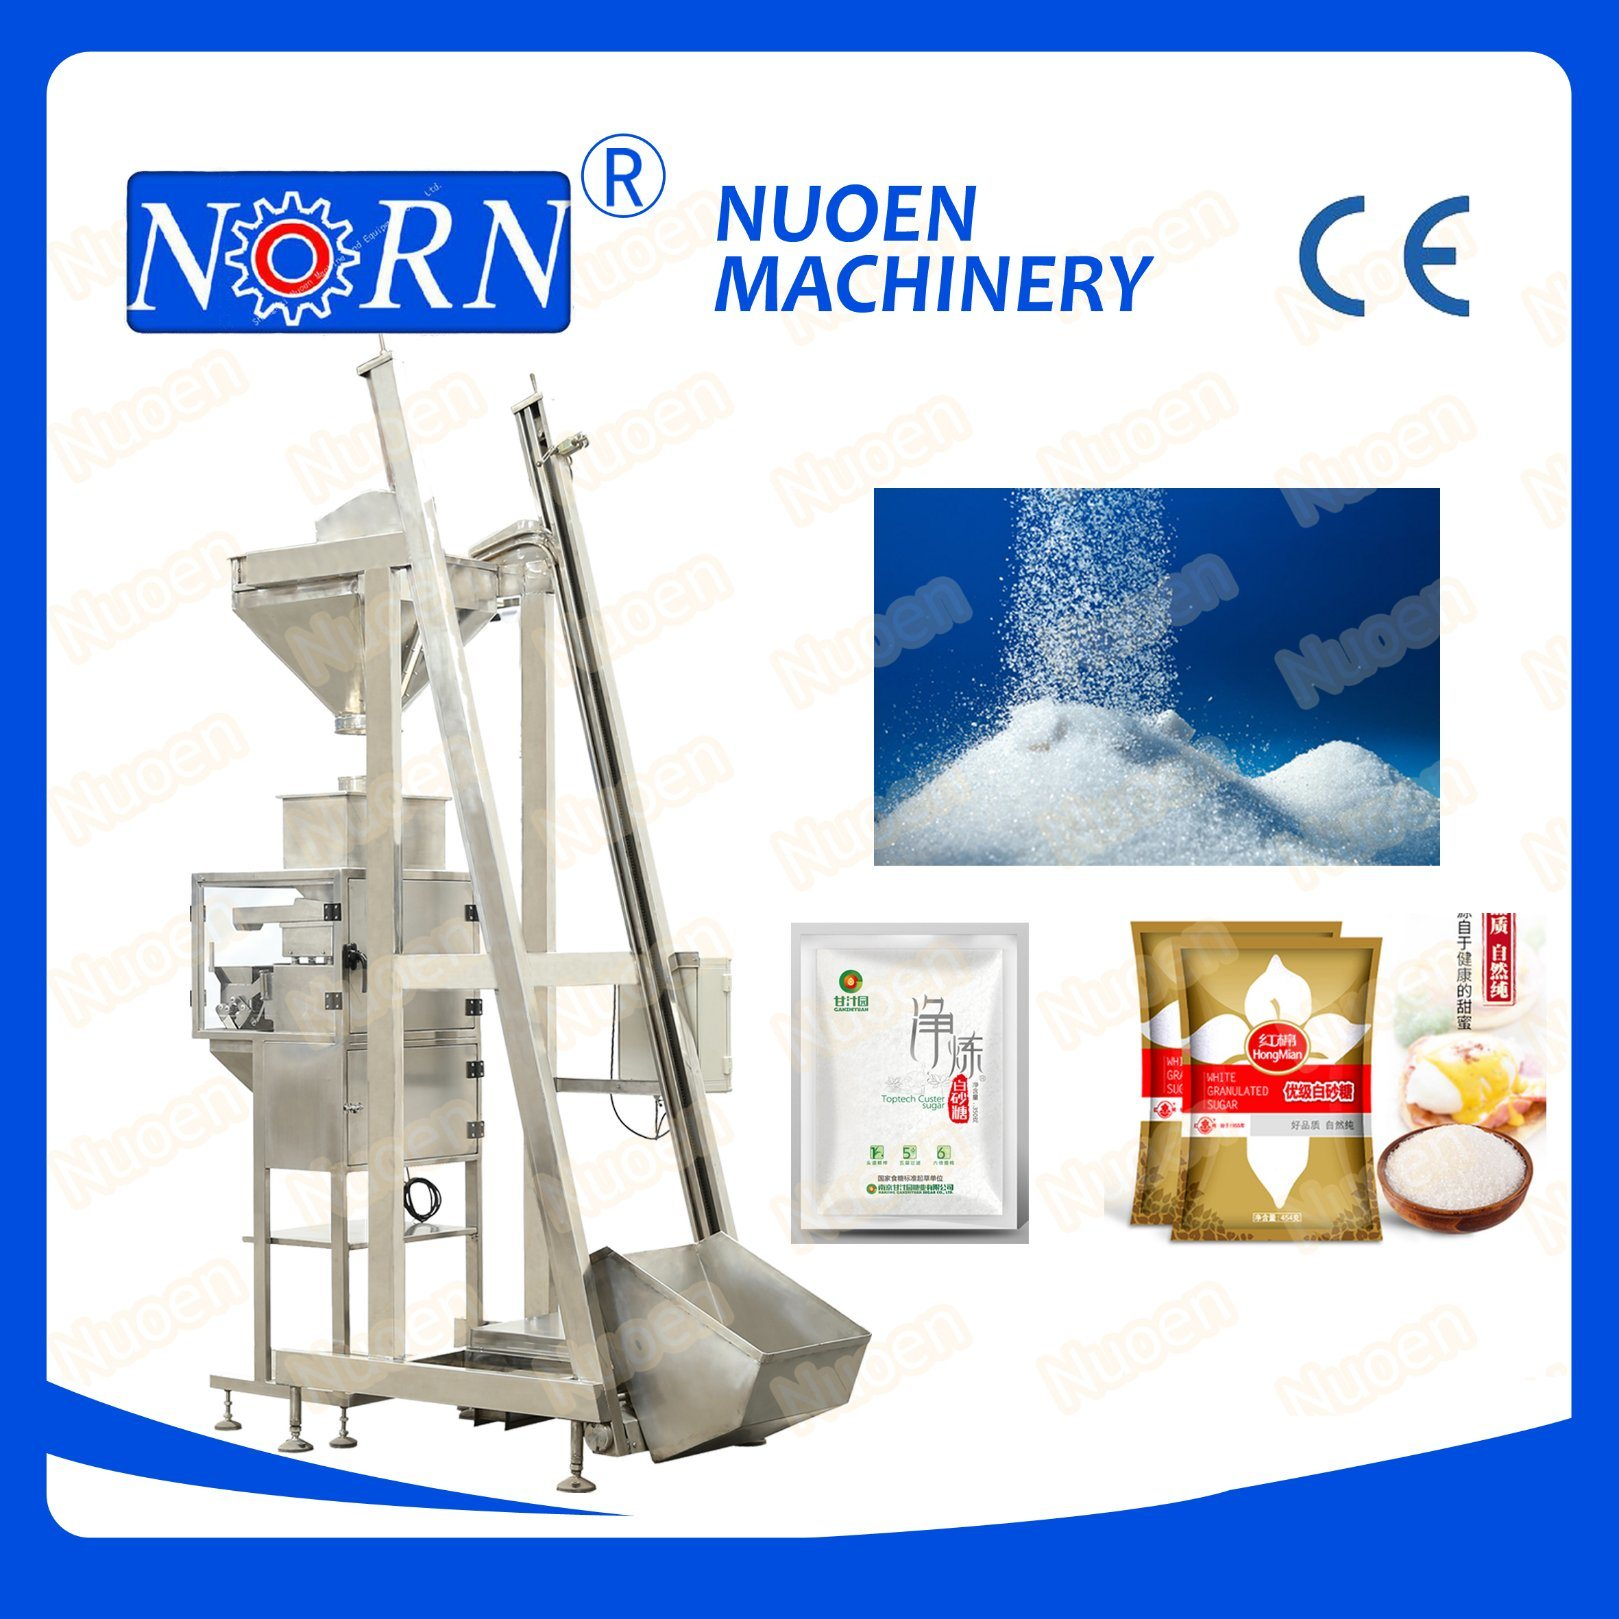 Automatic Package Measurement Packaging System